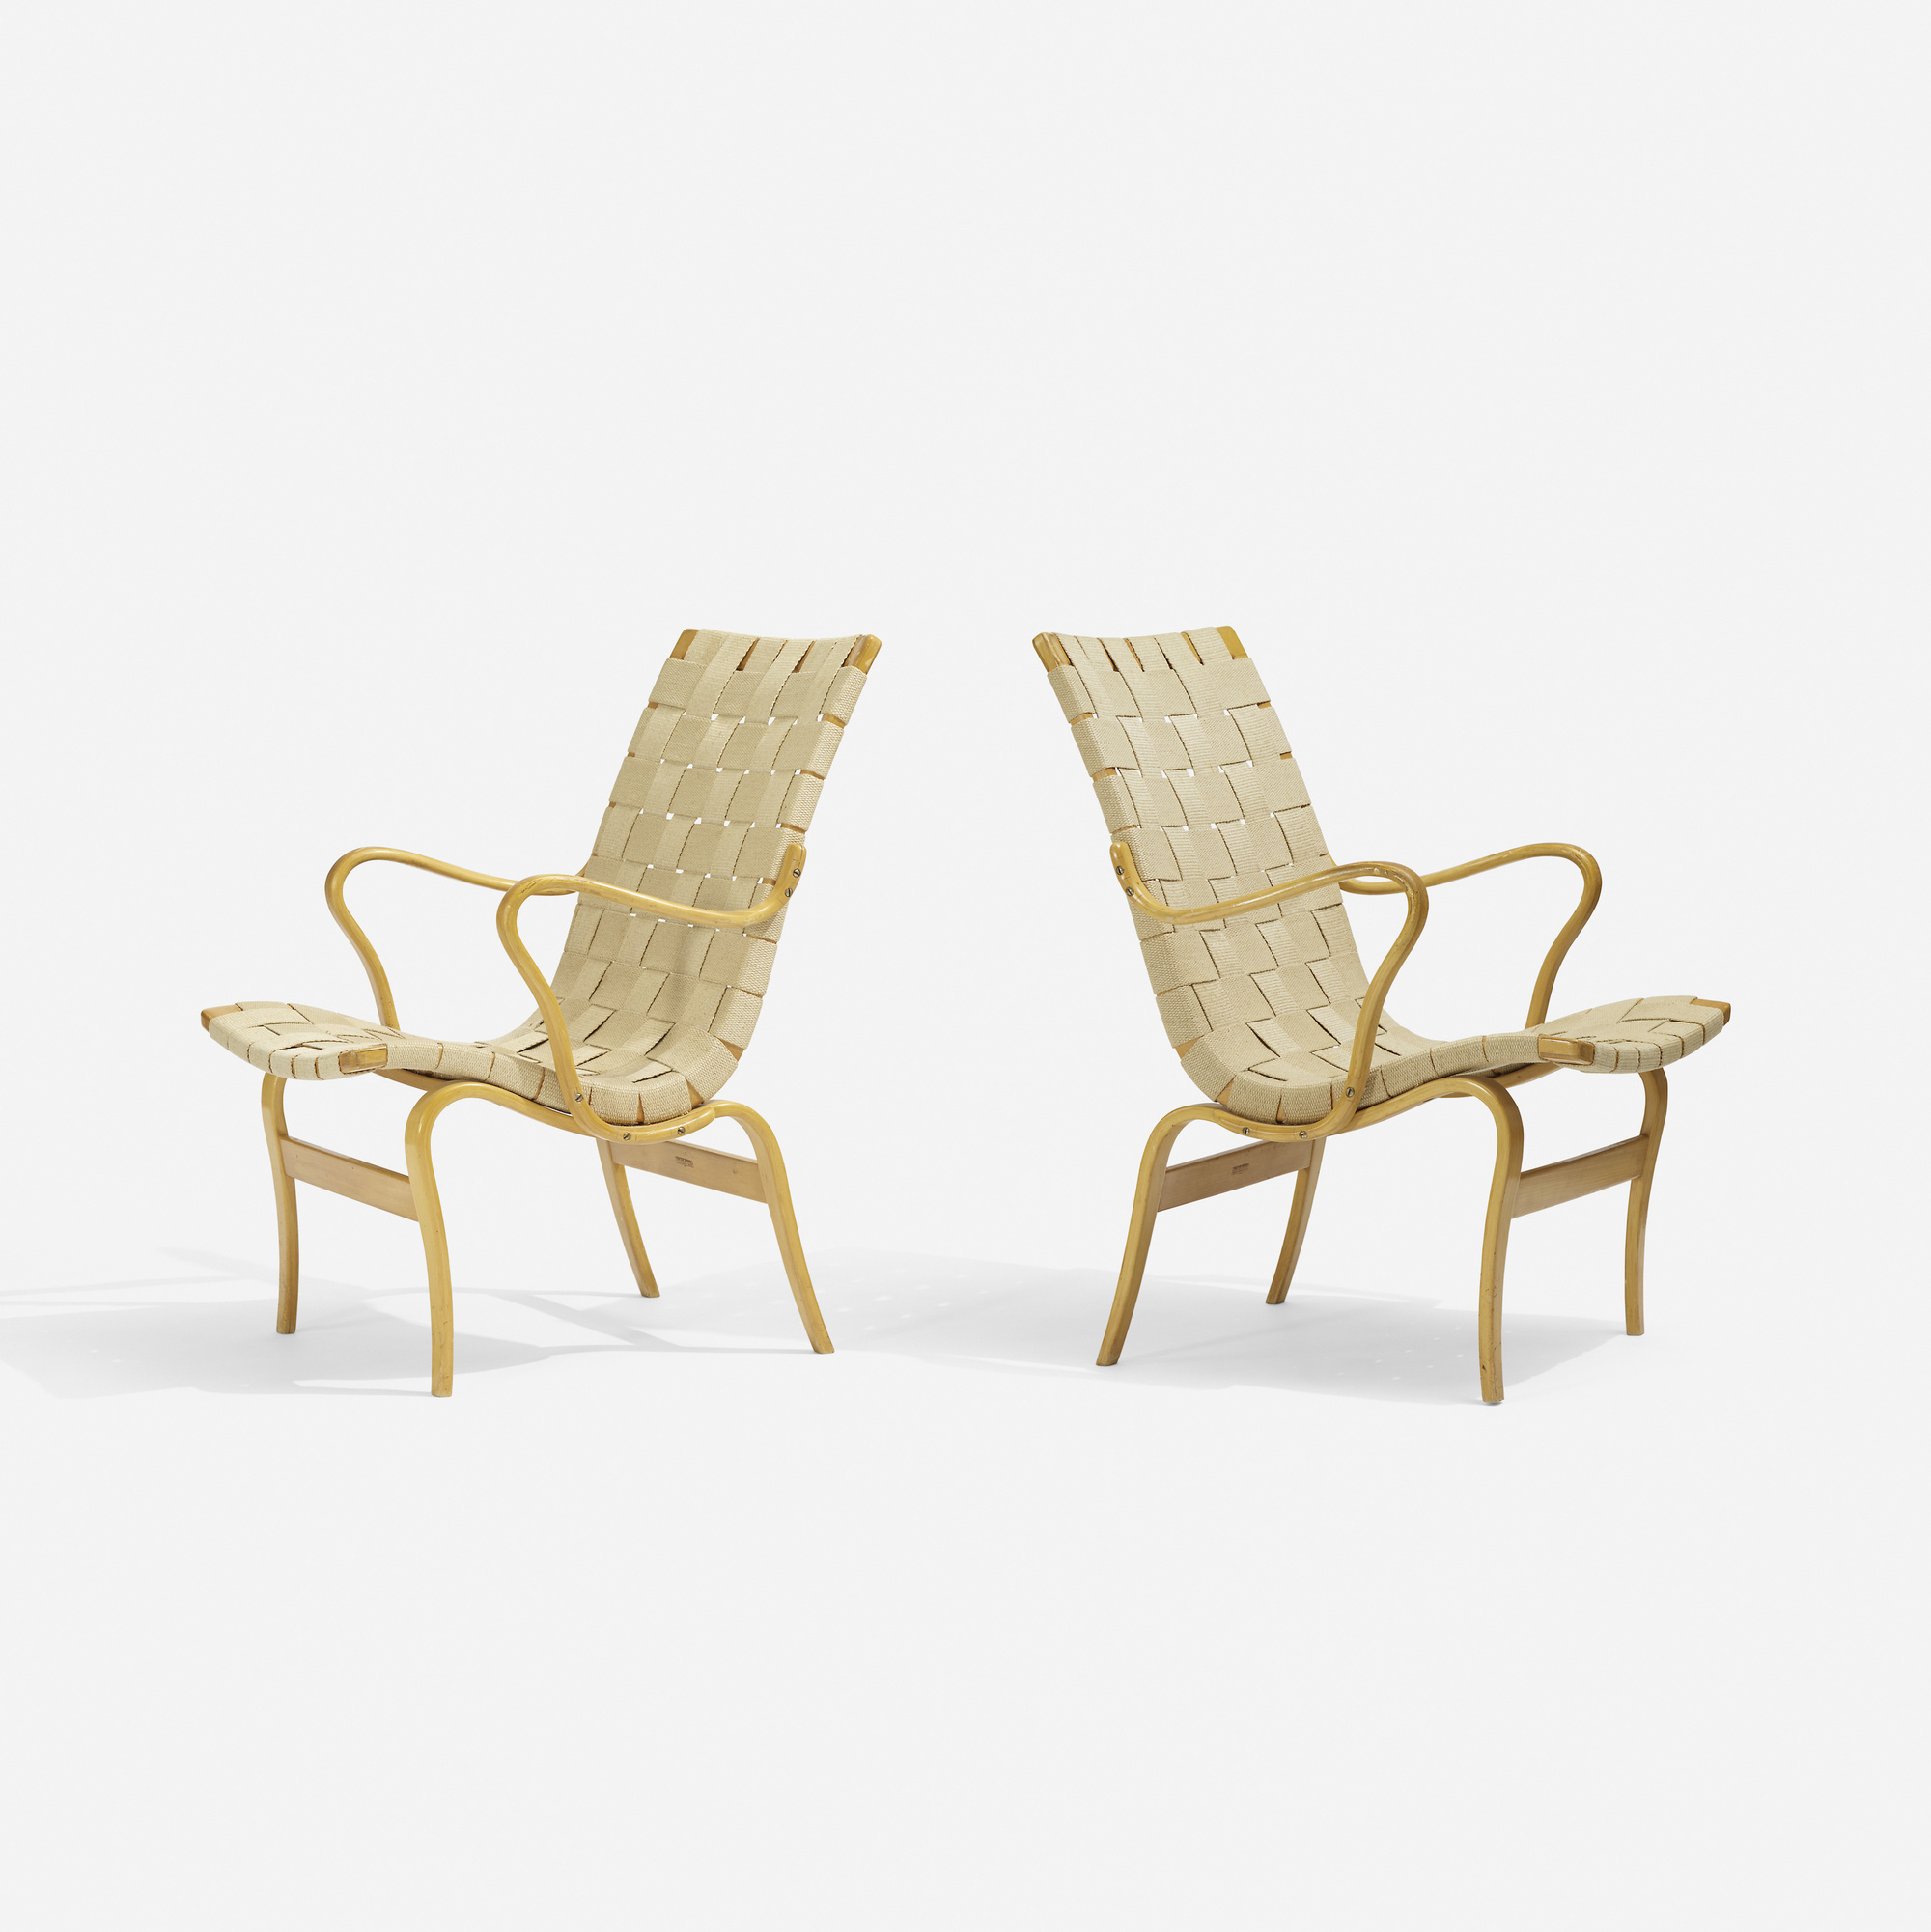 335: Bruno Mathsson / Eva chairs, pair (1 of 3)